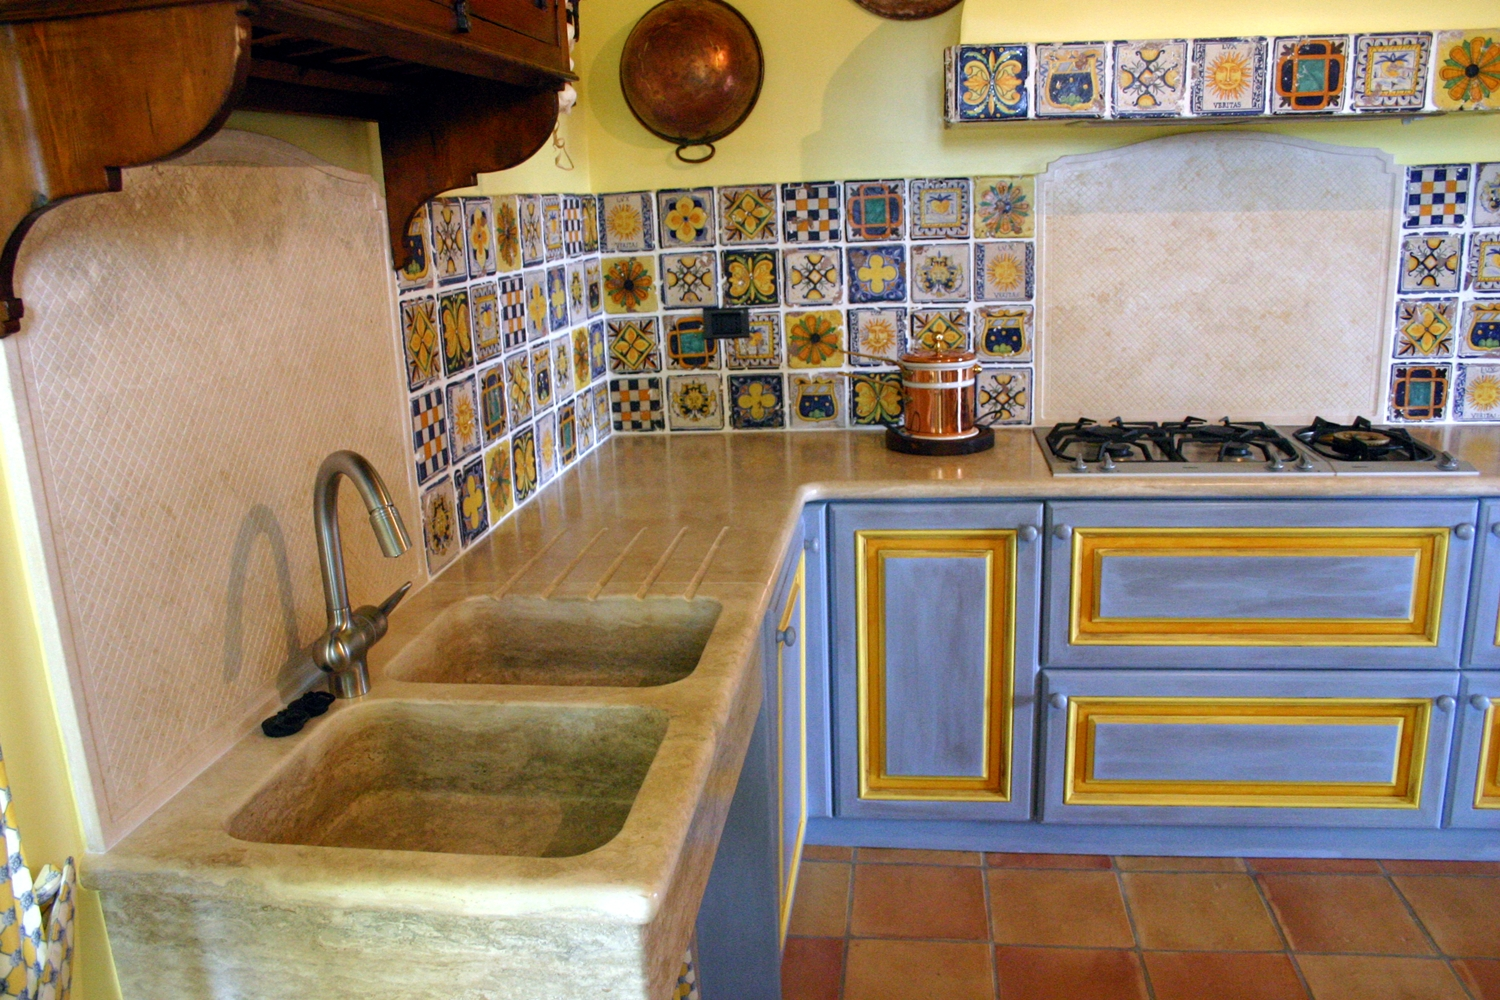 Gallery of top cucina ceramica marmo travertino prezzo al mq con